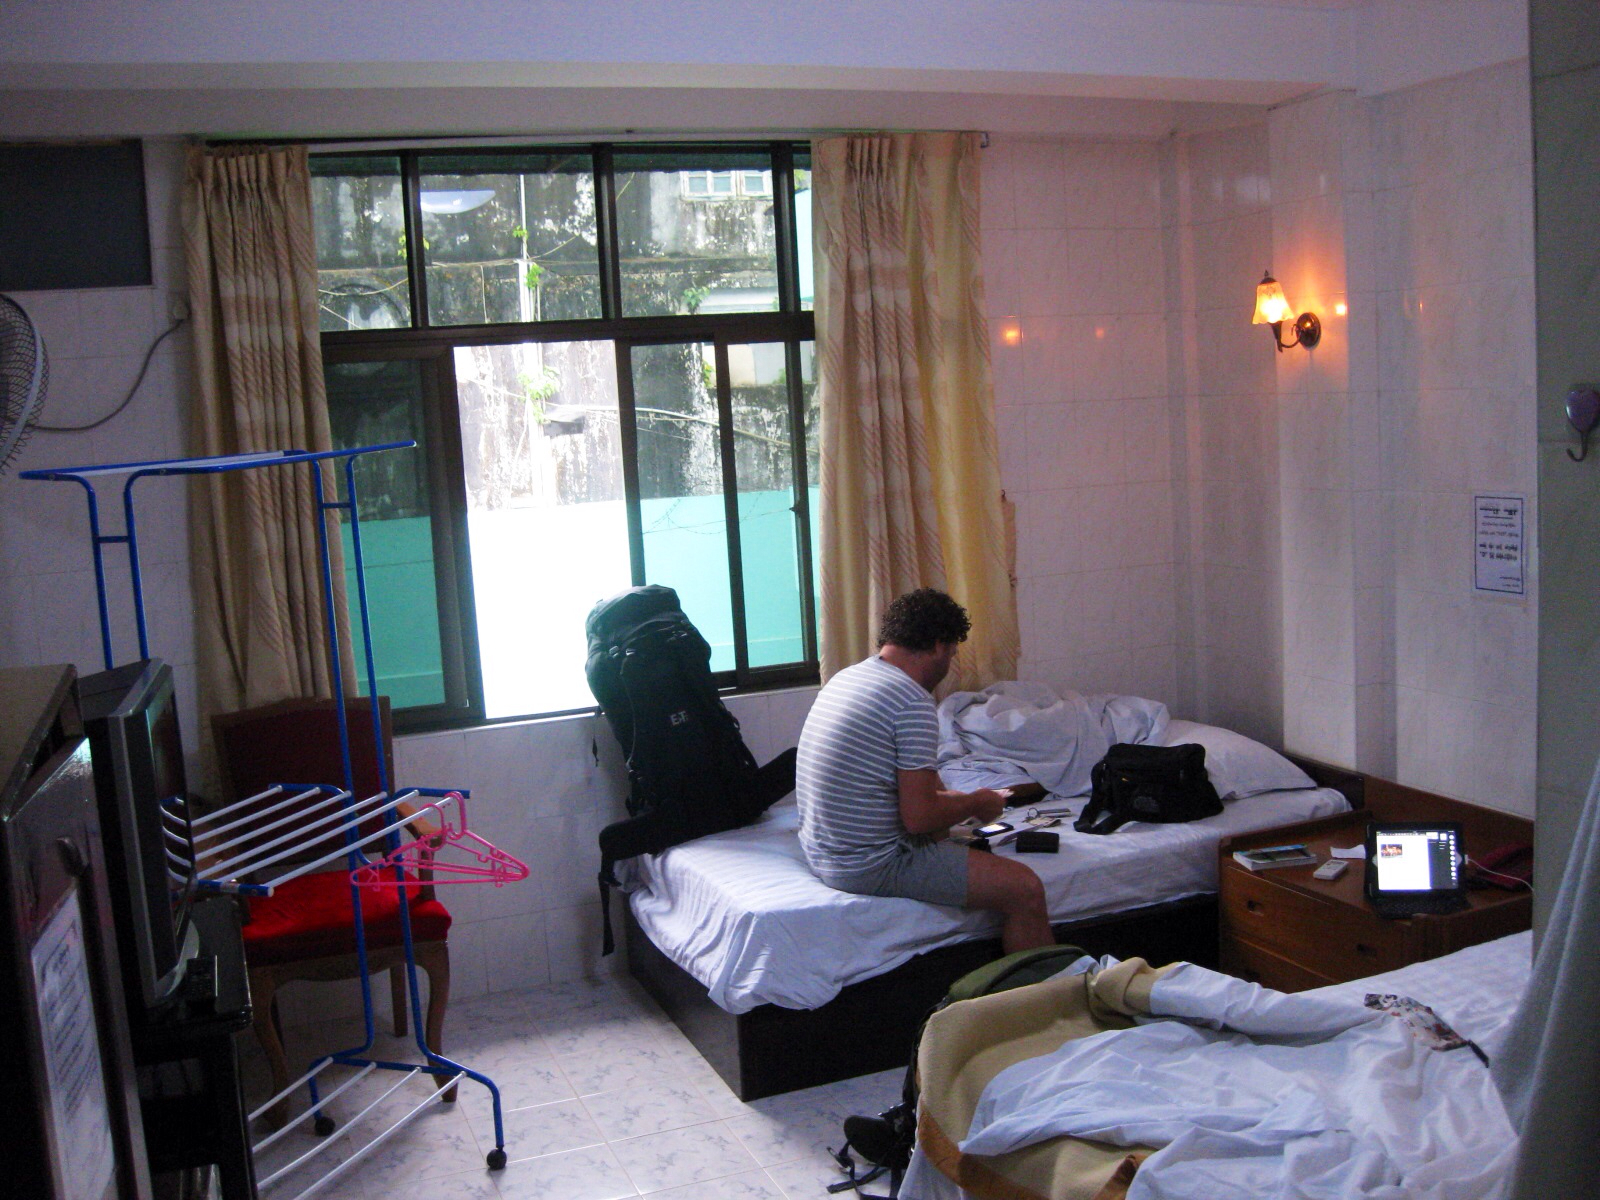 Not Really Charming But Spotless And The Room Is Very Well Equipped A Drying Rack Wow I Love That The First Ive Seen In Myanmar